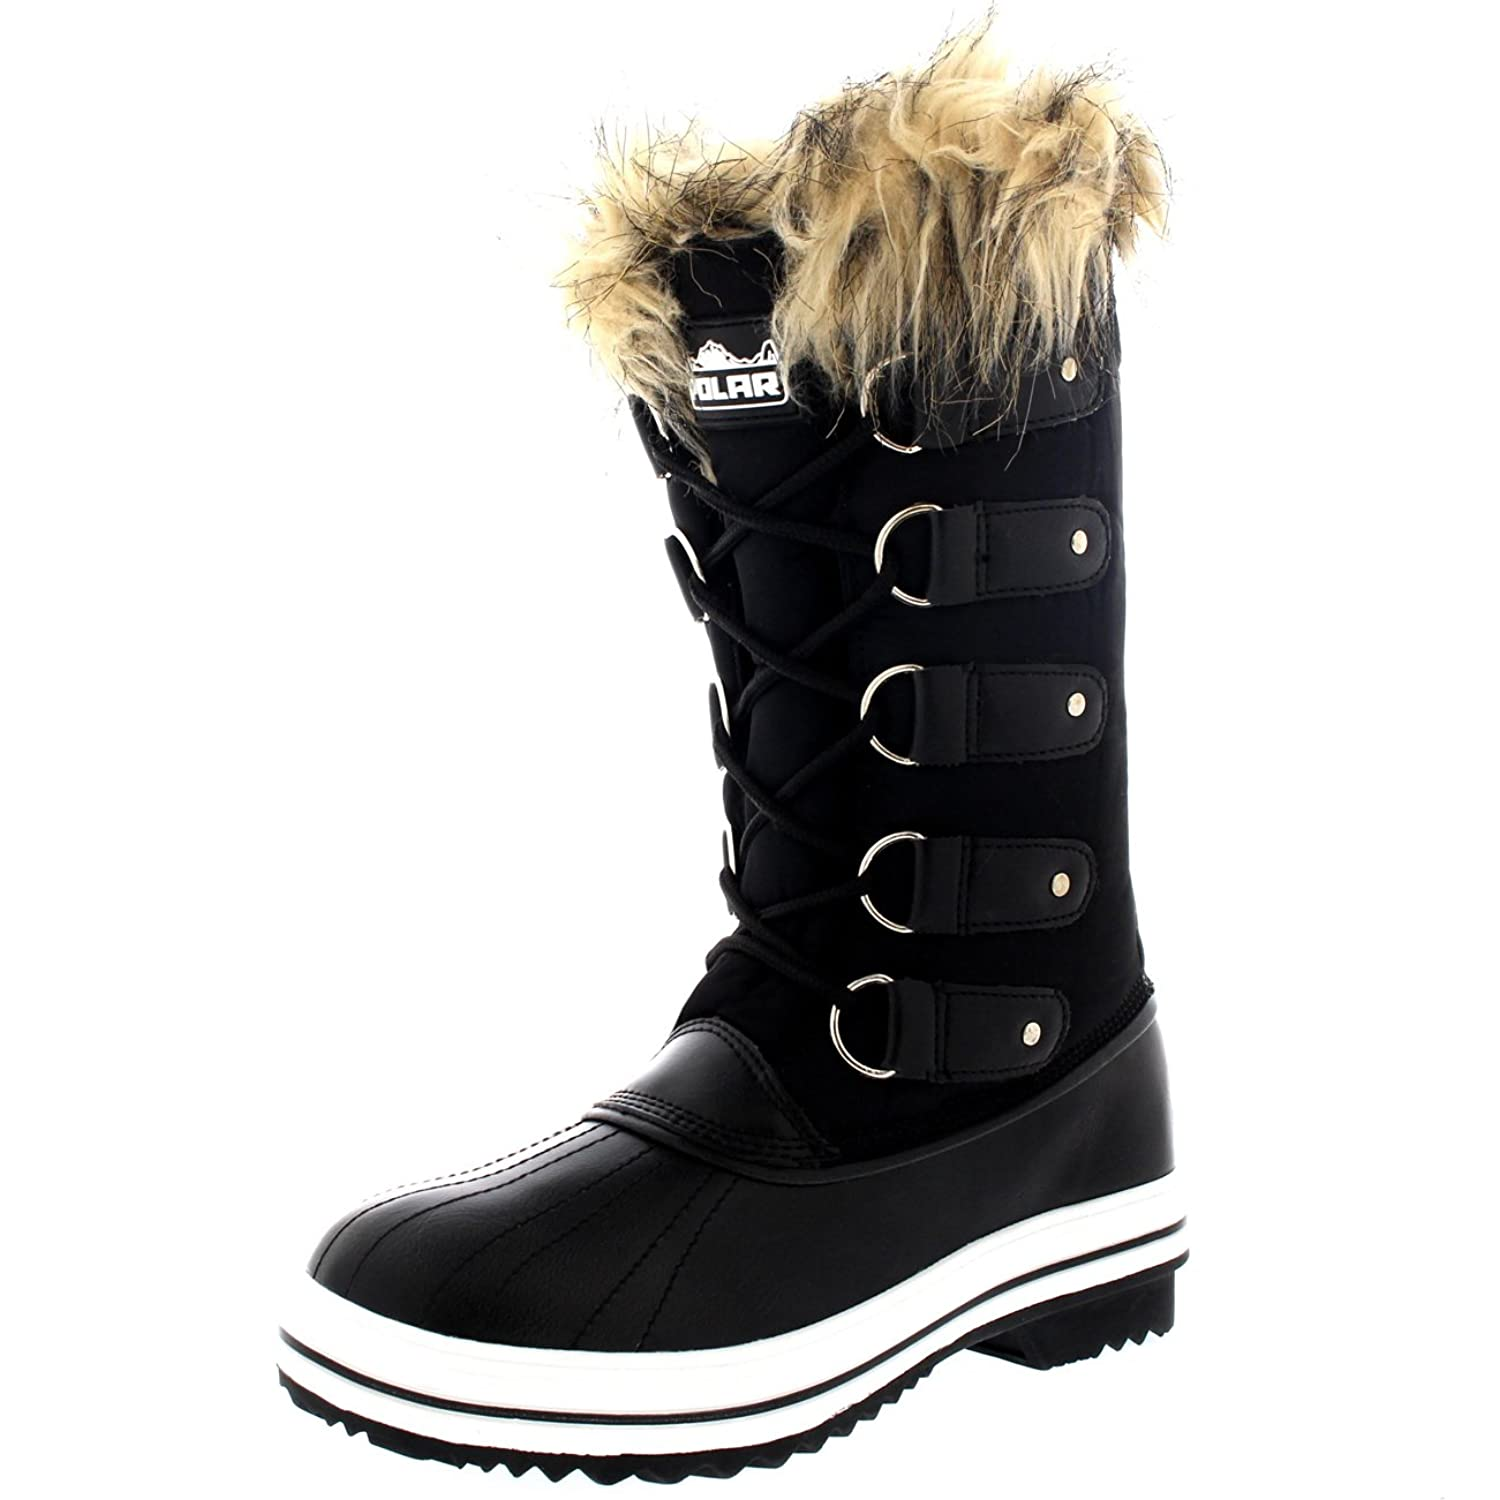 POLAR Womens Cuff Lace Up Rubber Sole Tall Winter Waterproof Snow Rain Shoe  Boots